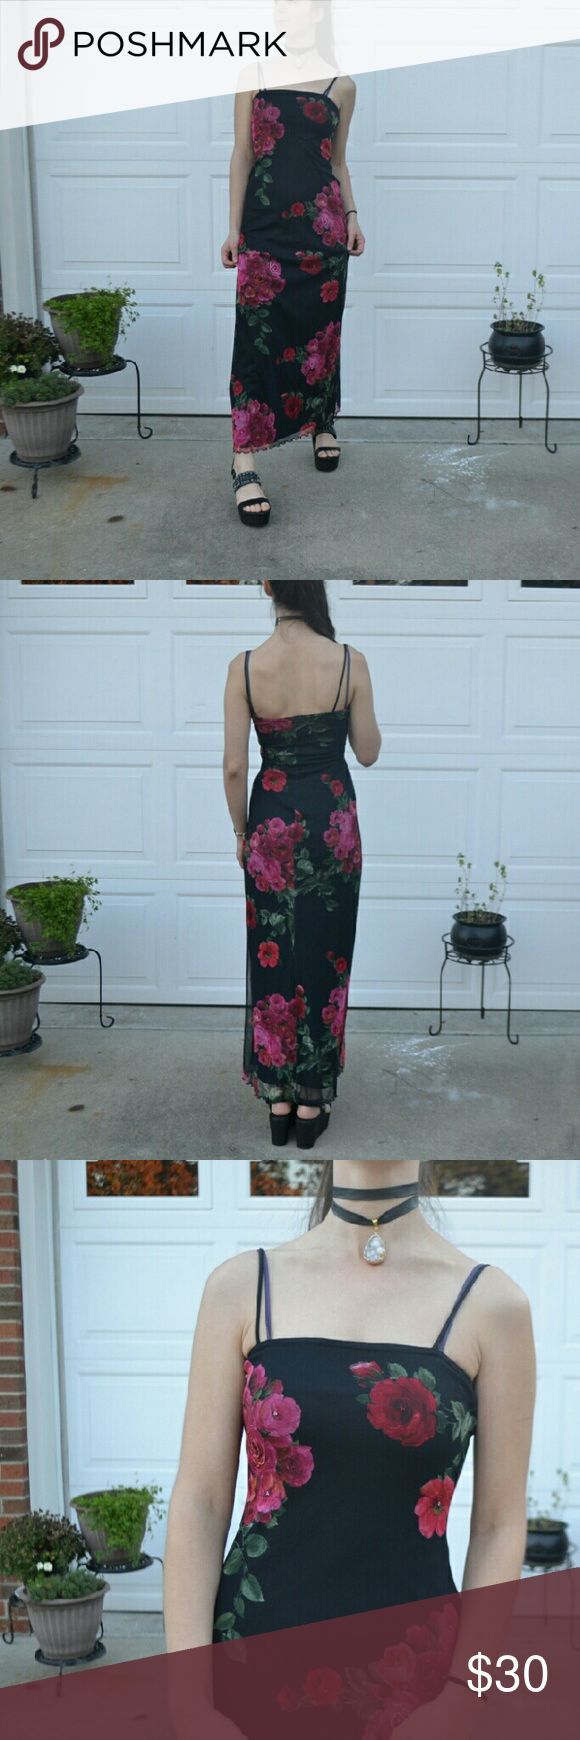 90s Floral Beaded Black Spaghetti Strap Maxi Dress UGH  Another slinky little black maxi dress that ties in with my (healthy) Rose McGowan obsession.  Brand is a vintage, looks 1990s era, All That Jazz  Size small  Very nice condition!  If any beads are missing, I didn't notice.  Spaghetti straps are lovely neckline is lovely style is lovely flowers are lovely just THIS DRESSSSS  School dance must have if you want something no one else will have!  Love it. All That Jazz  Dresses Maxi